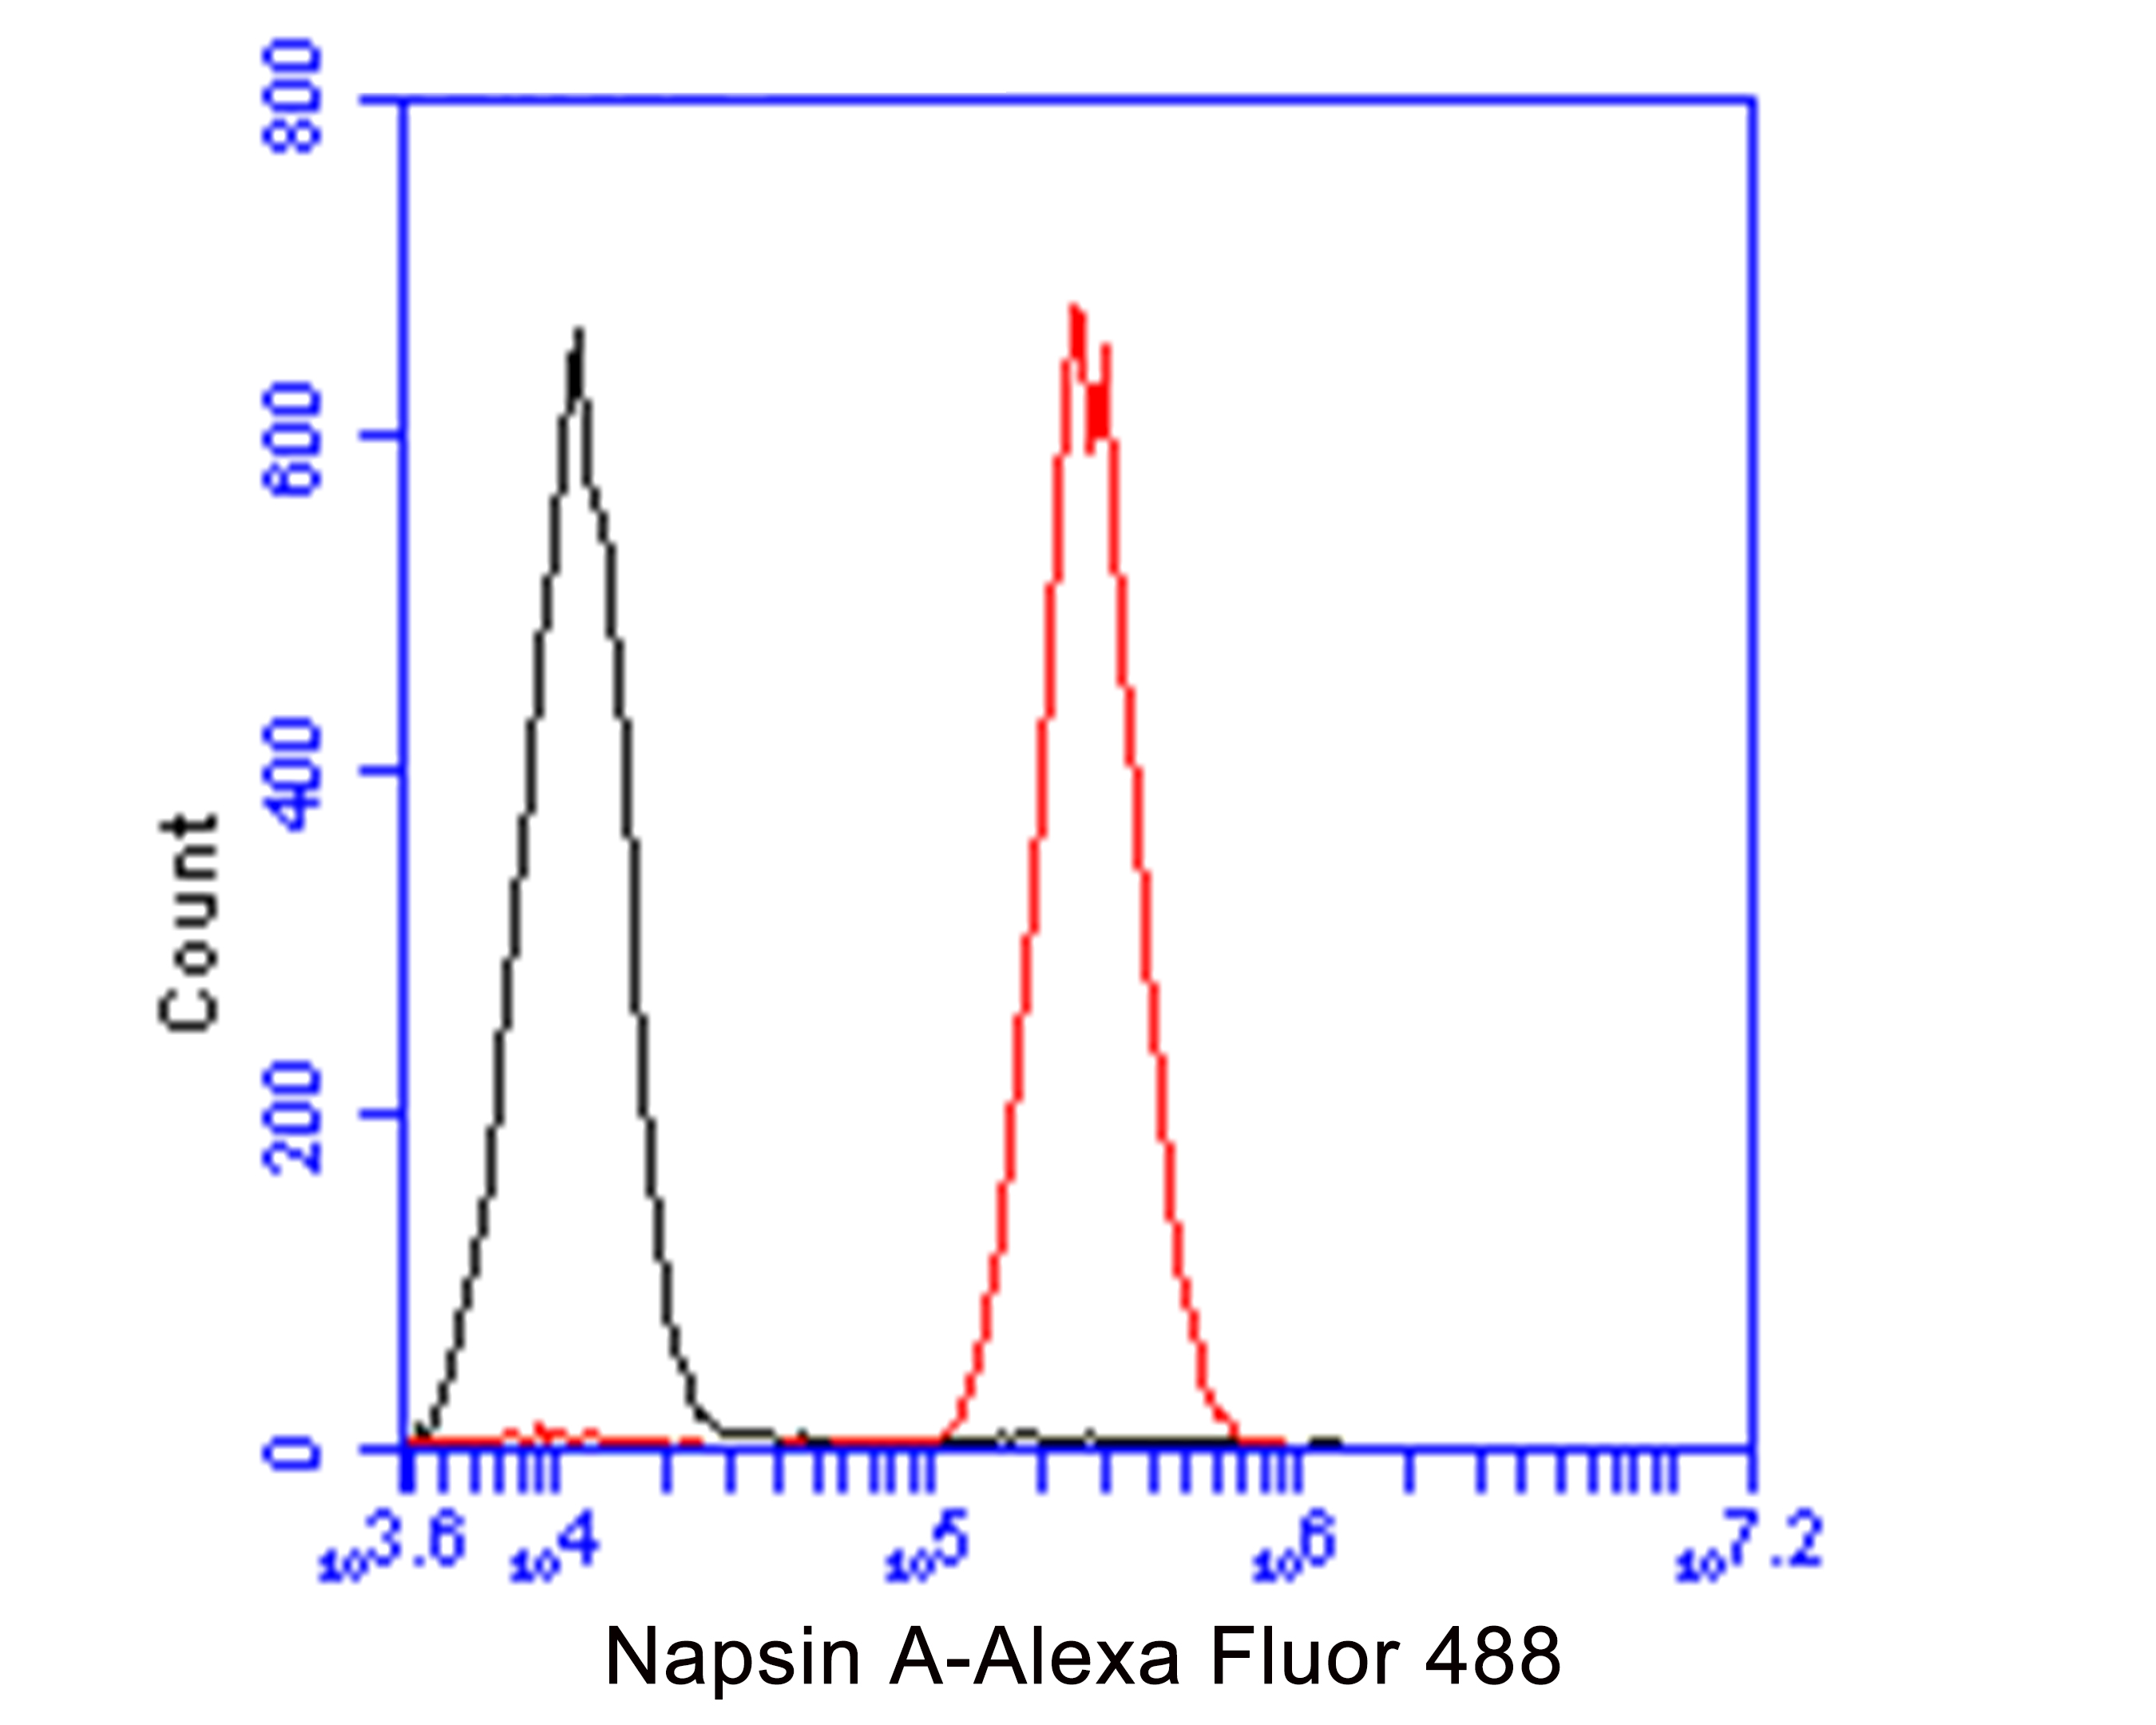 Flow cytometric analysis of NAPSIN A was done on A549 cells. The cells were fixed, permeabilized and stained with the primary antibody (ER1901-84, 1/100) (red). After incubation of the primary antibody at room temperature for an hour, the cells were stained with a Alexa Fluor 488-conjugated goat anti-rabbit IgG Secondary antibody at 1/500 dilution for 30 minutes.Unlabelled sample was used as a control (cells without incubation with primary antibody; black).